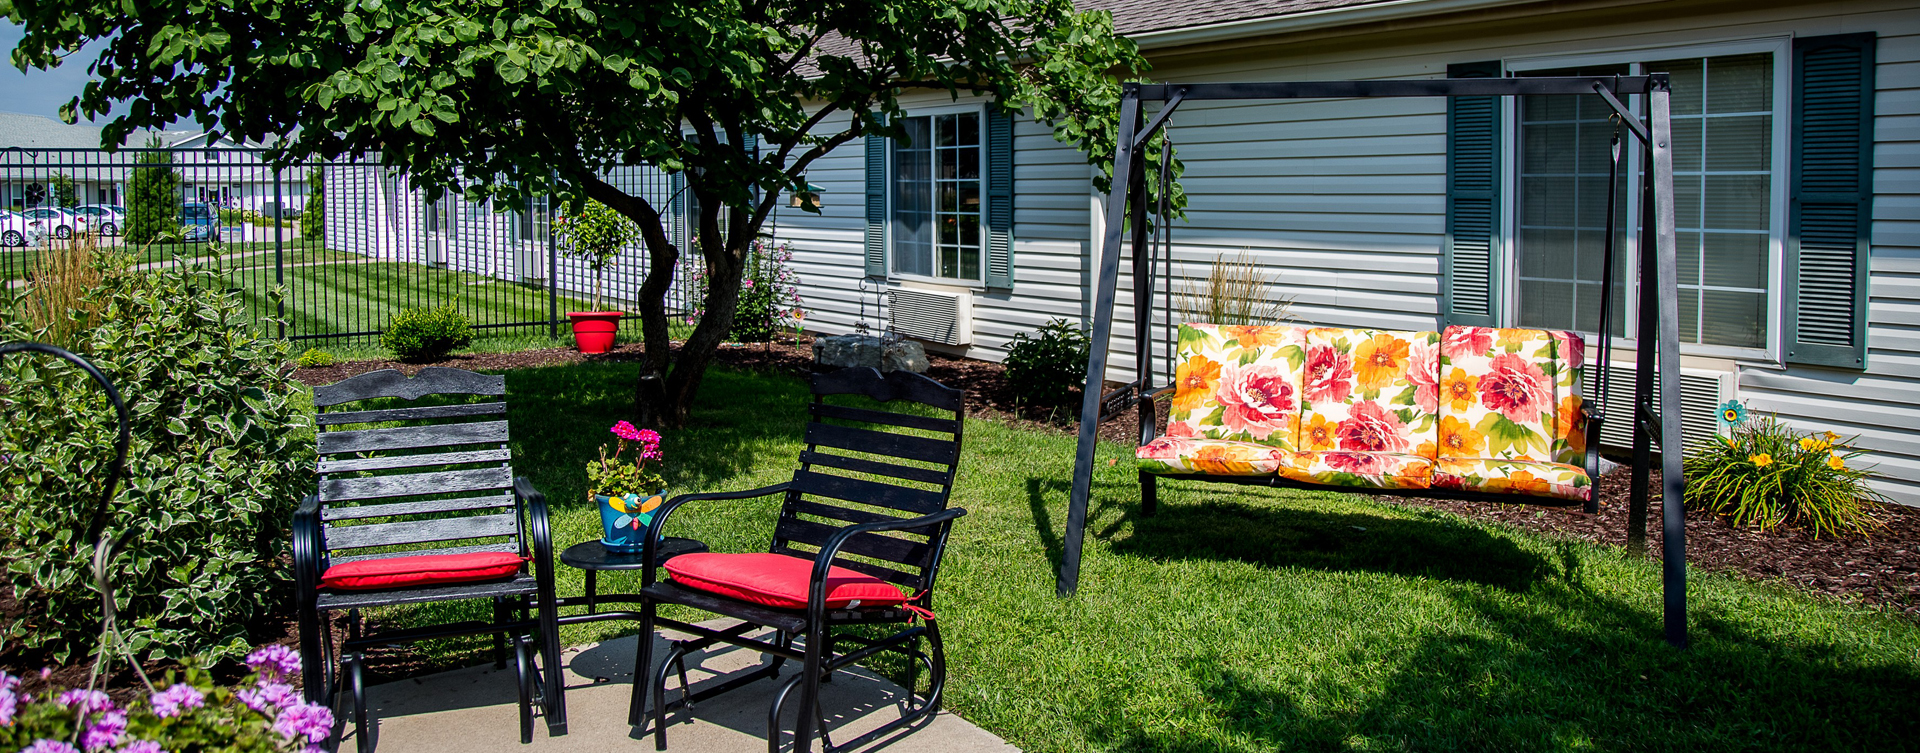 Residents with dementia can enjoy a traveling path, relaxed seating and raised garden beds in the courtyard at Bickford of Burlington